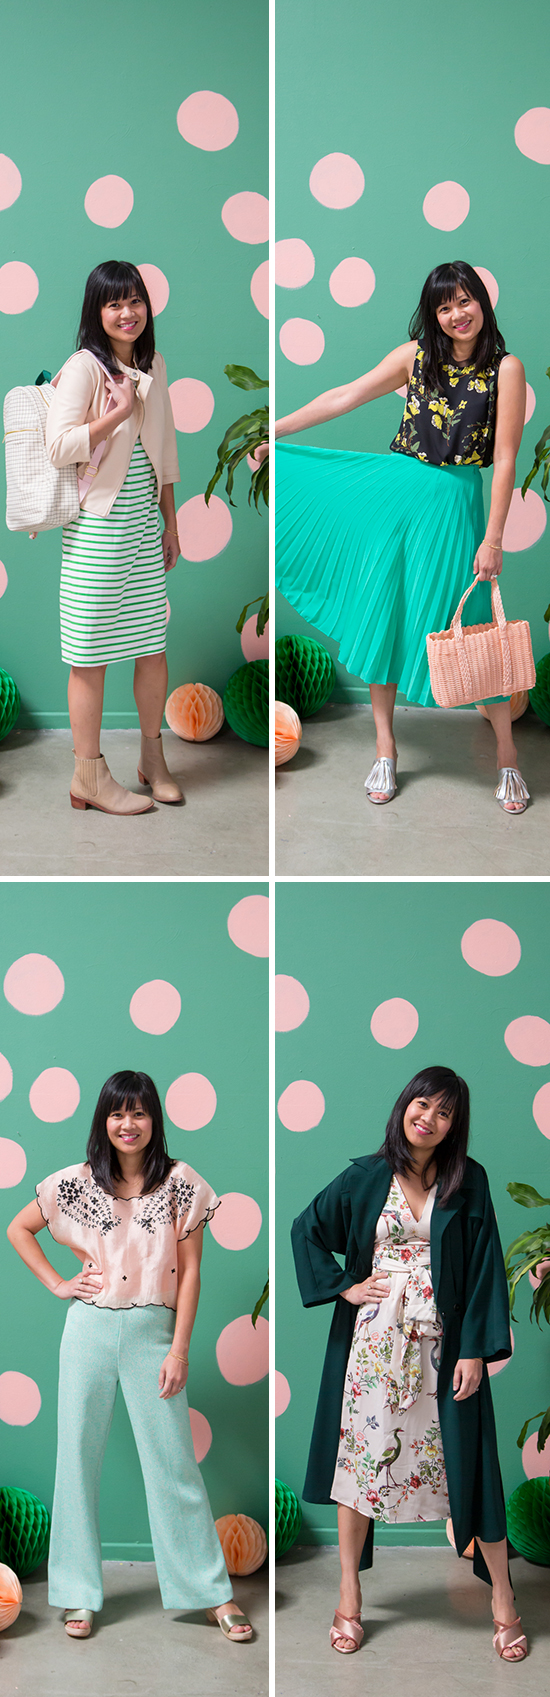 2017_10_13_Peach-Green-Outfits-10-grid-blog